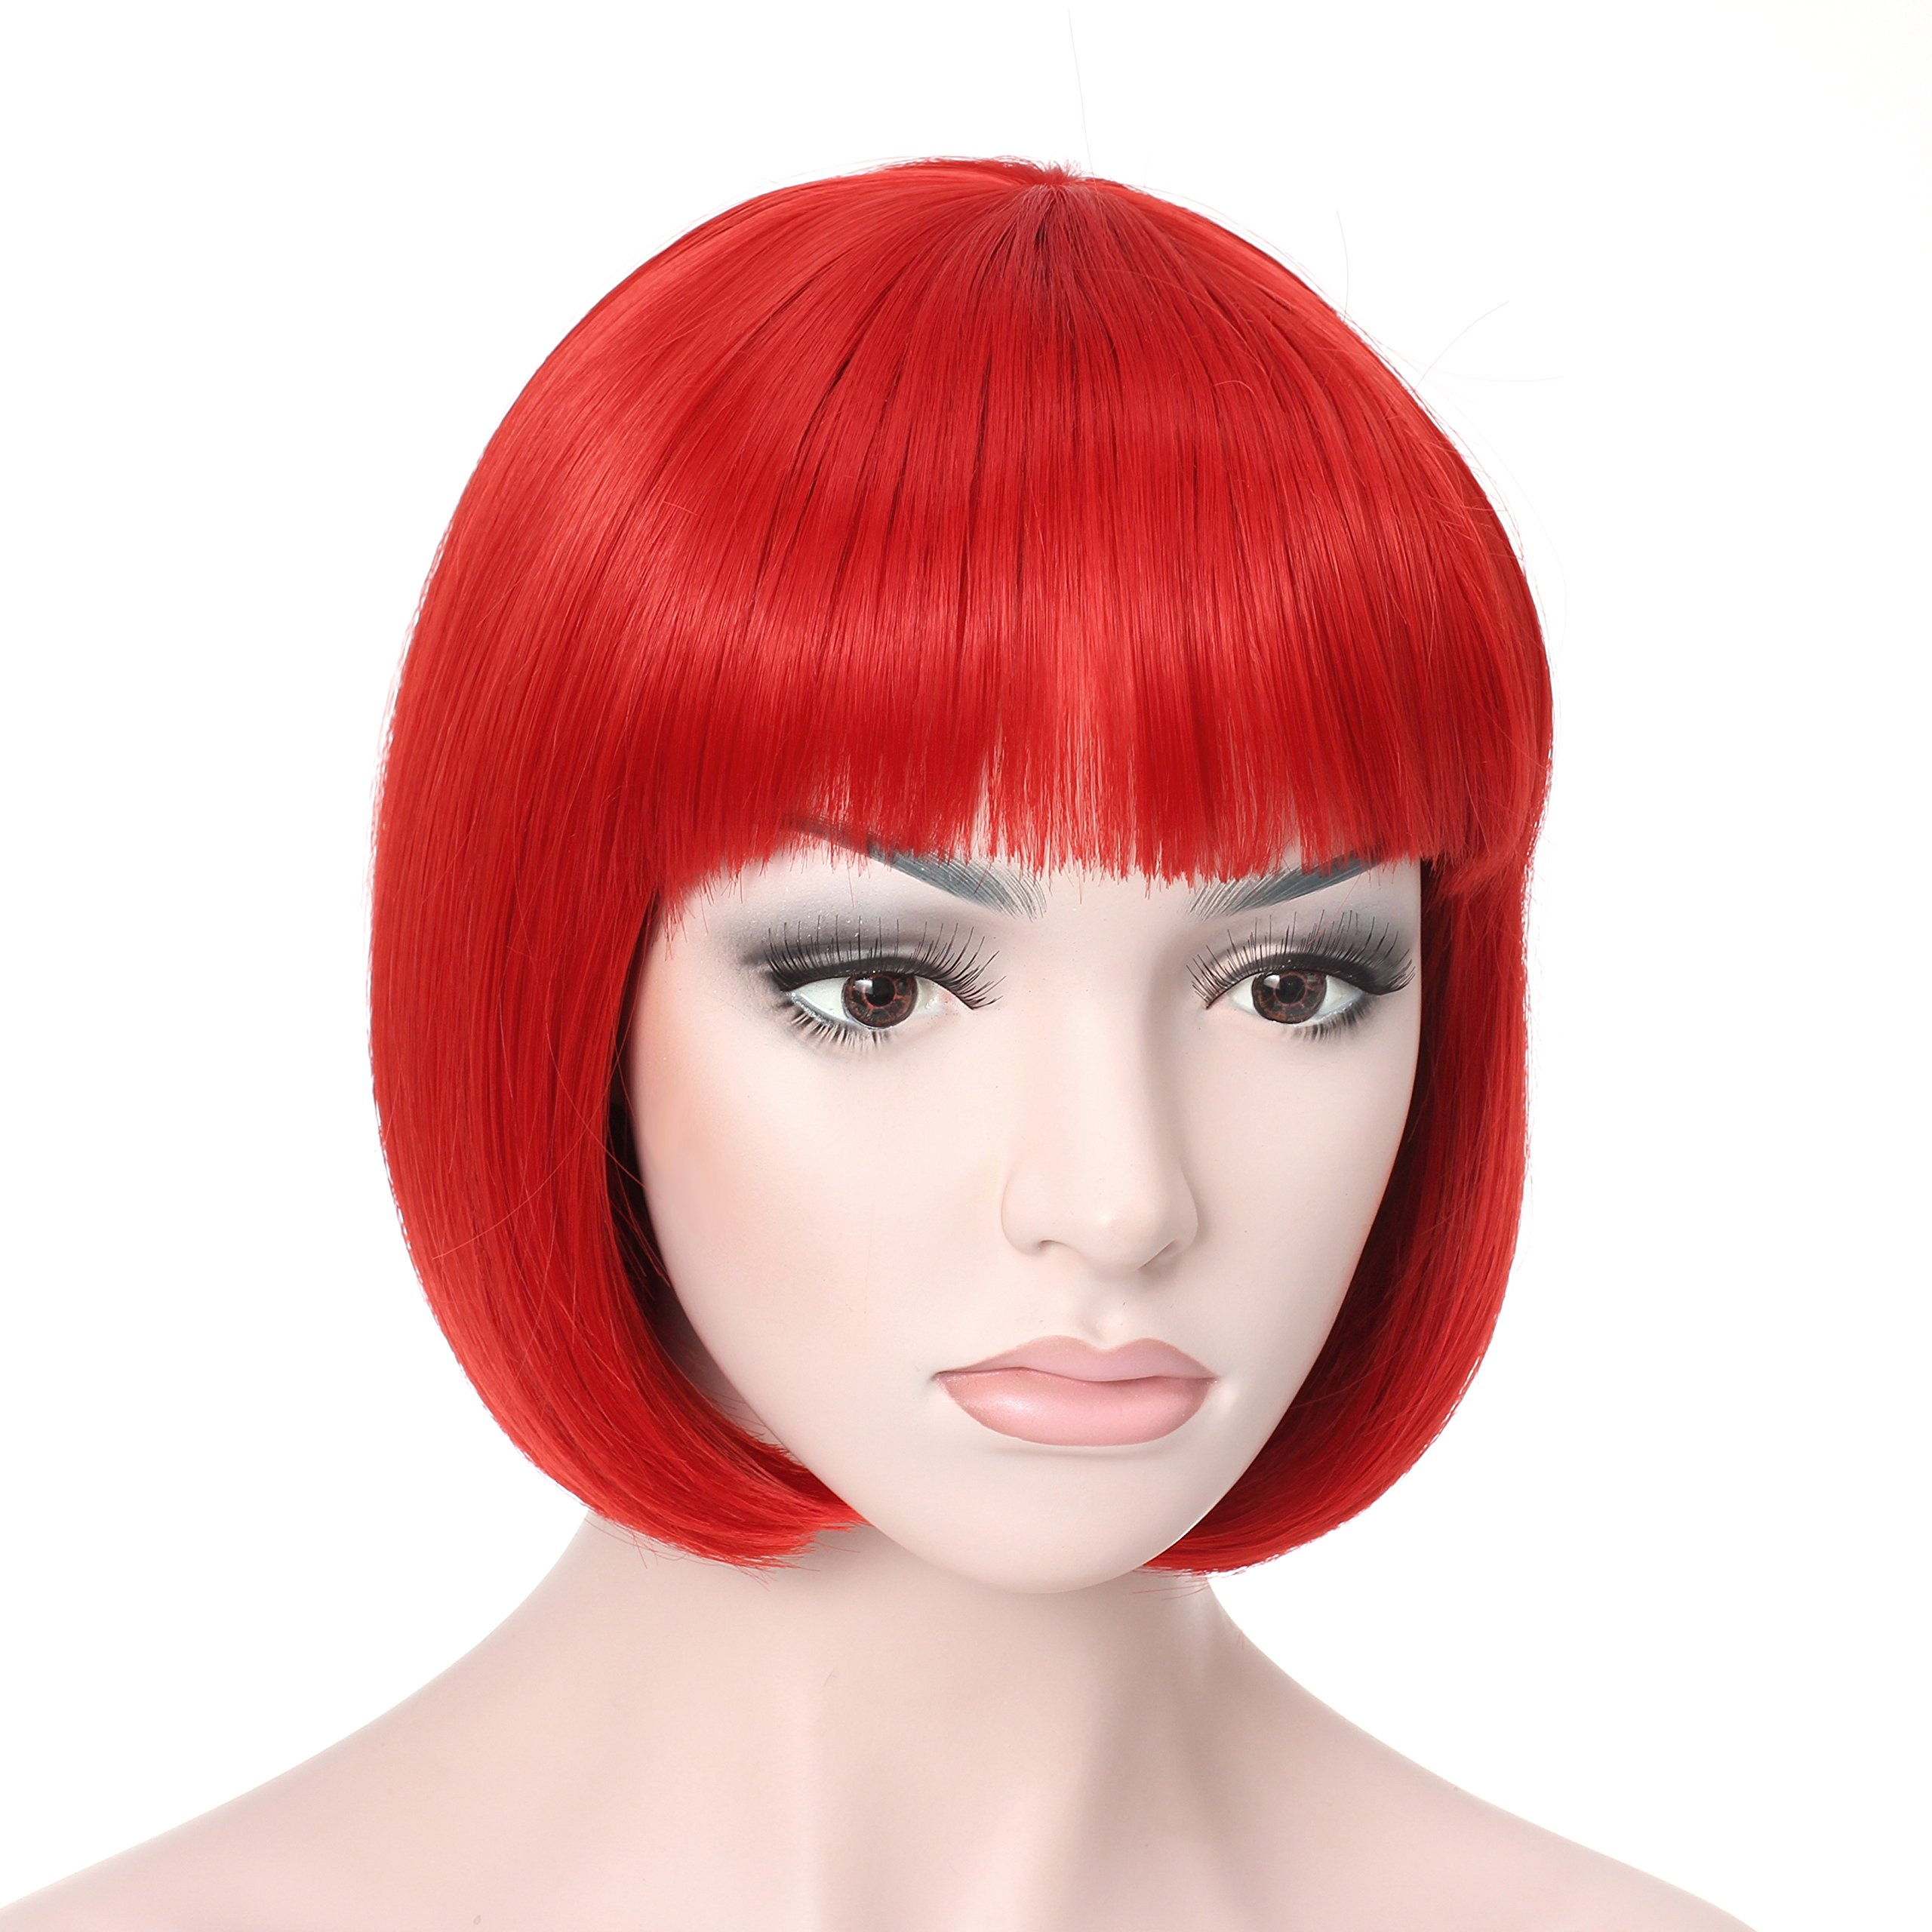 OneDor 10'' Short Straight Hair Flapper Cosplay Costume Bob Wig (Red)